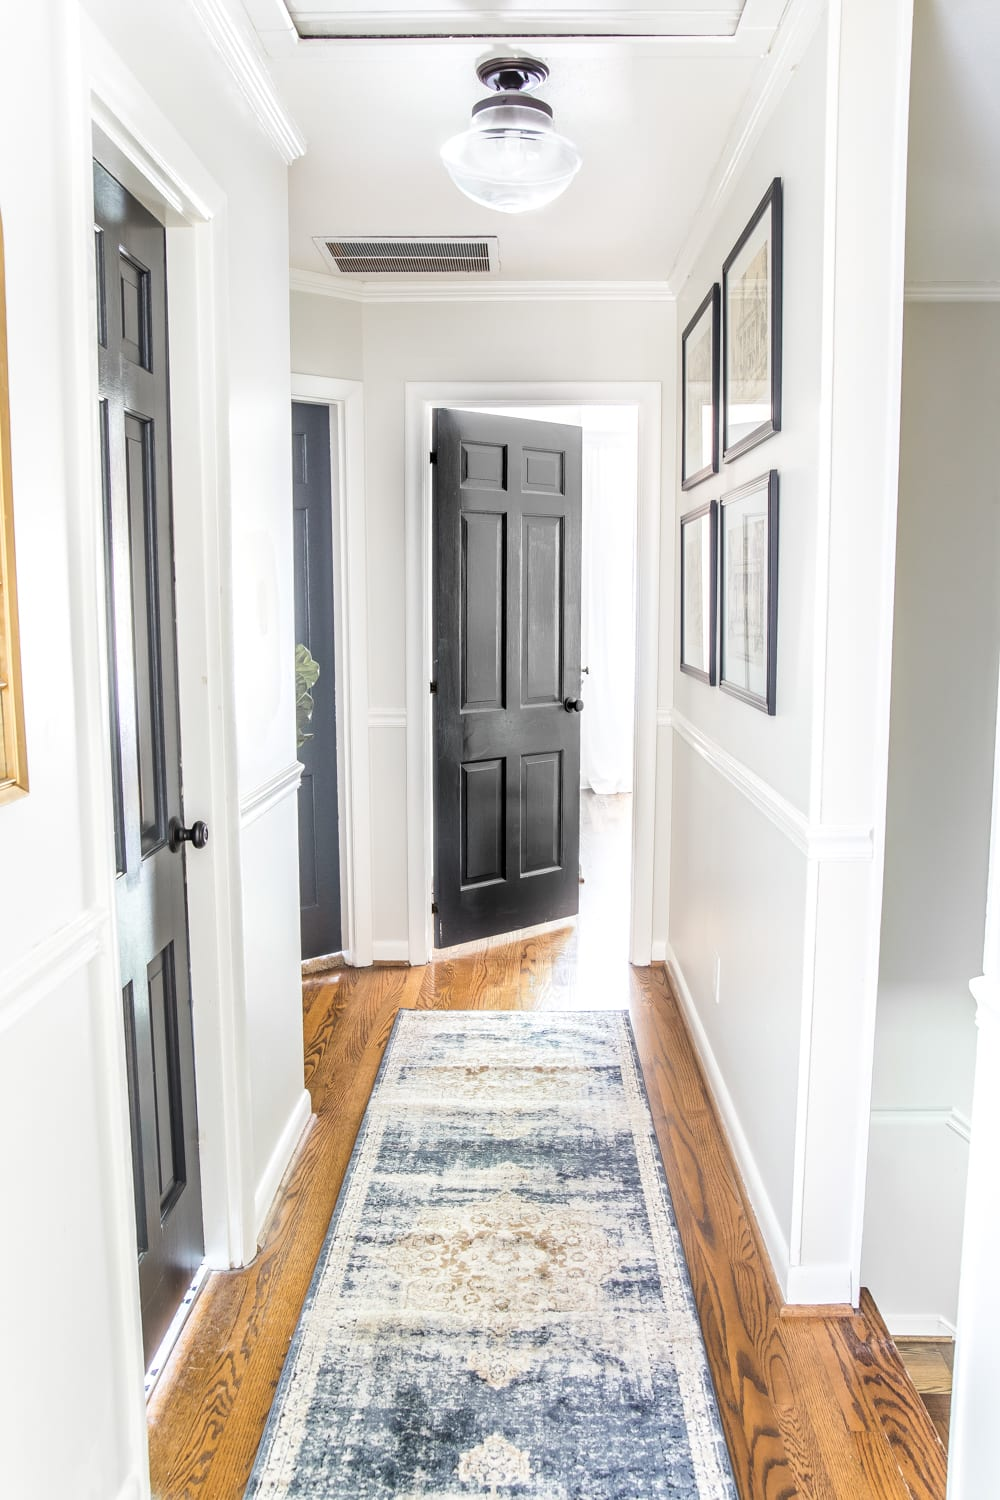 6 Tips to Decorate a Boring Hallway | blesserhouse.com - light gray painted hallway with dark charcoal doors, a runner, new lighting, and wall decor